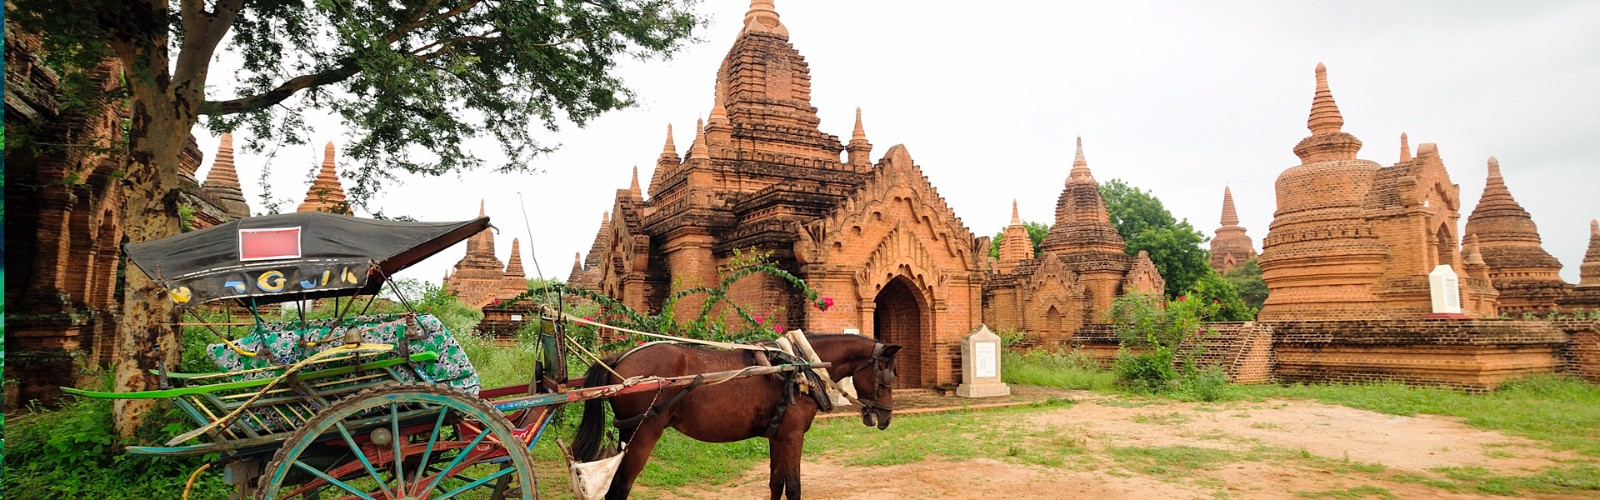 Myanmar Discovery Tour | Wendy Wu Tours